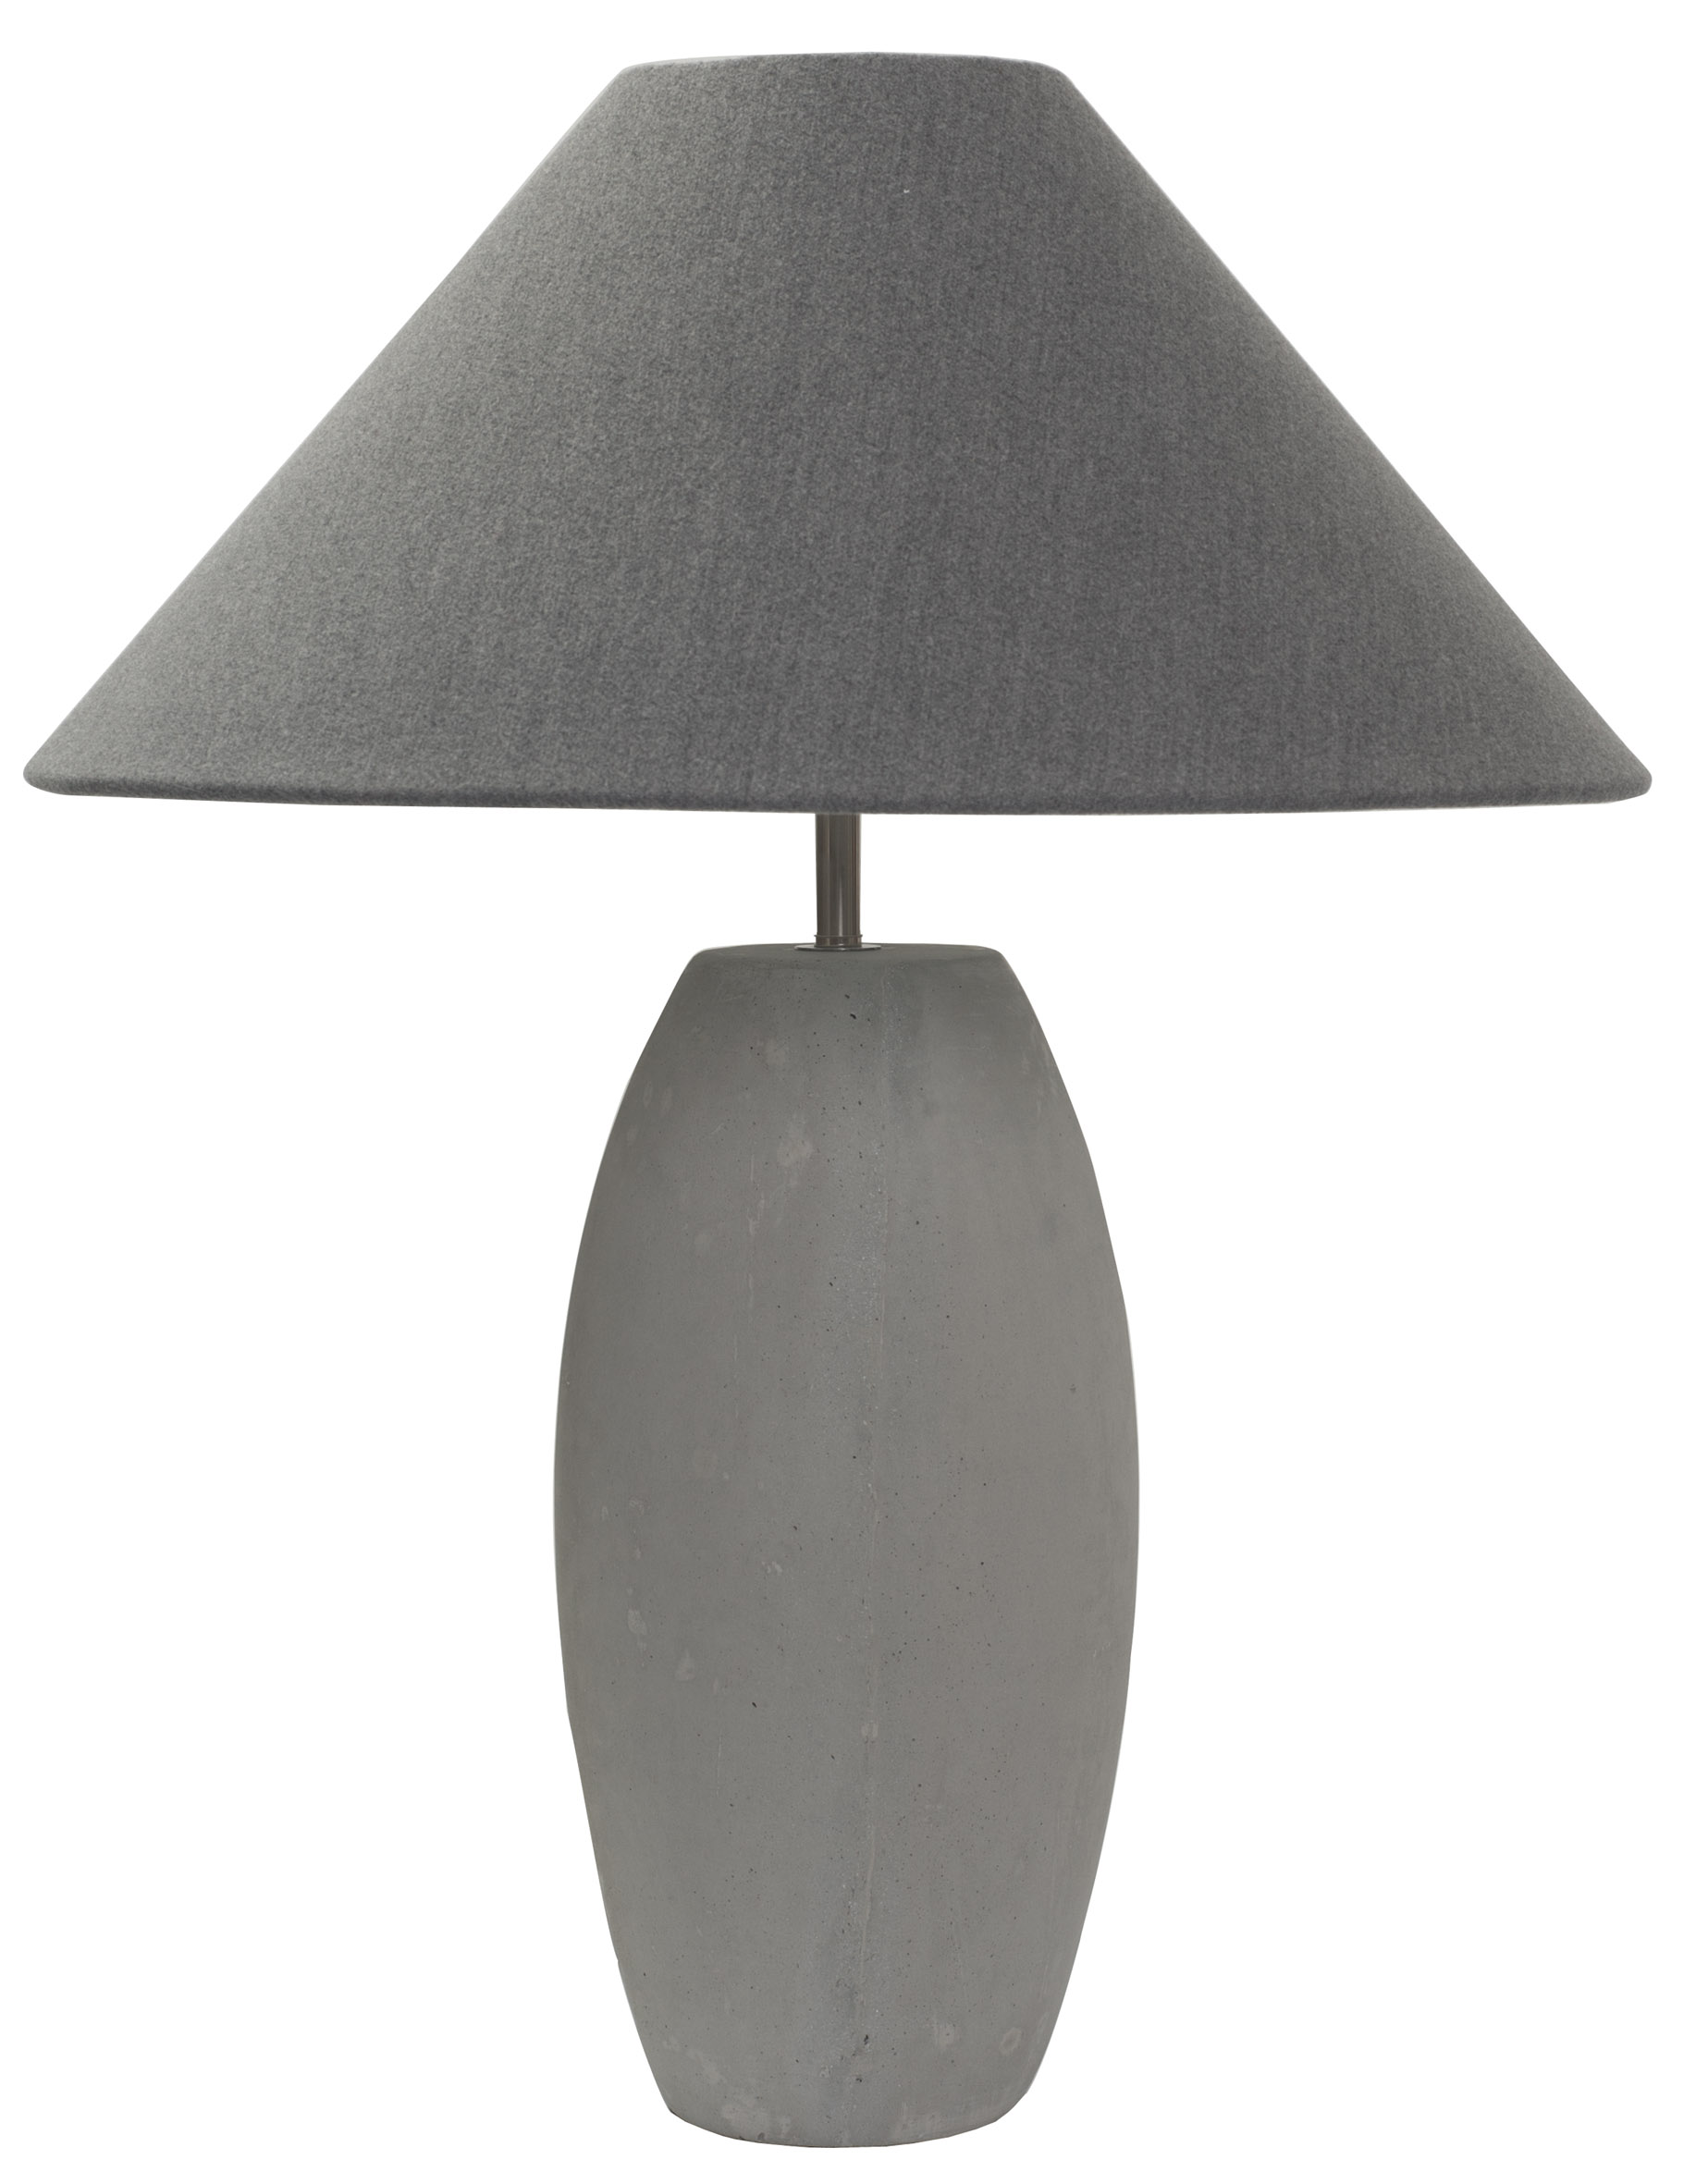 Coolie 2165524cm Shade Felt Grey pr home : urbanellipticallamp2 from prhome.co.uk size 1834 x 2362 jpeg 274kB